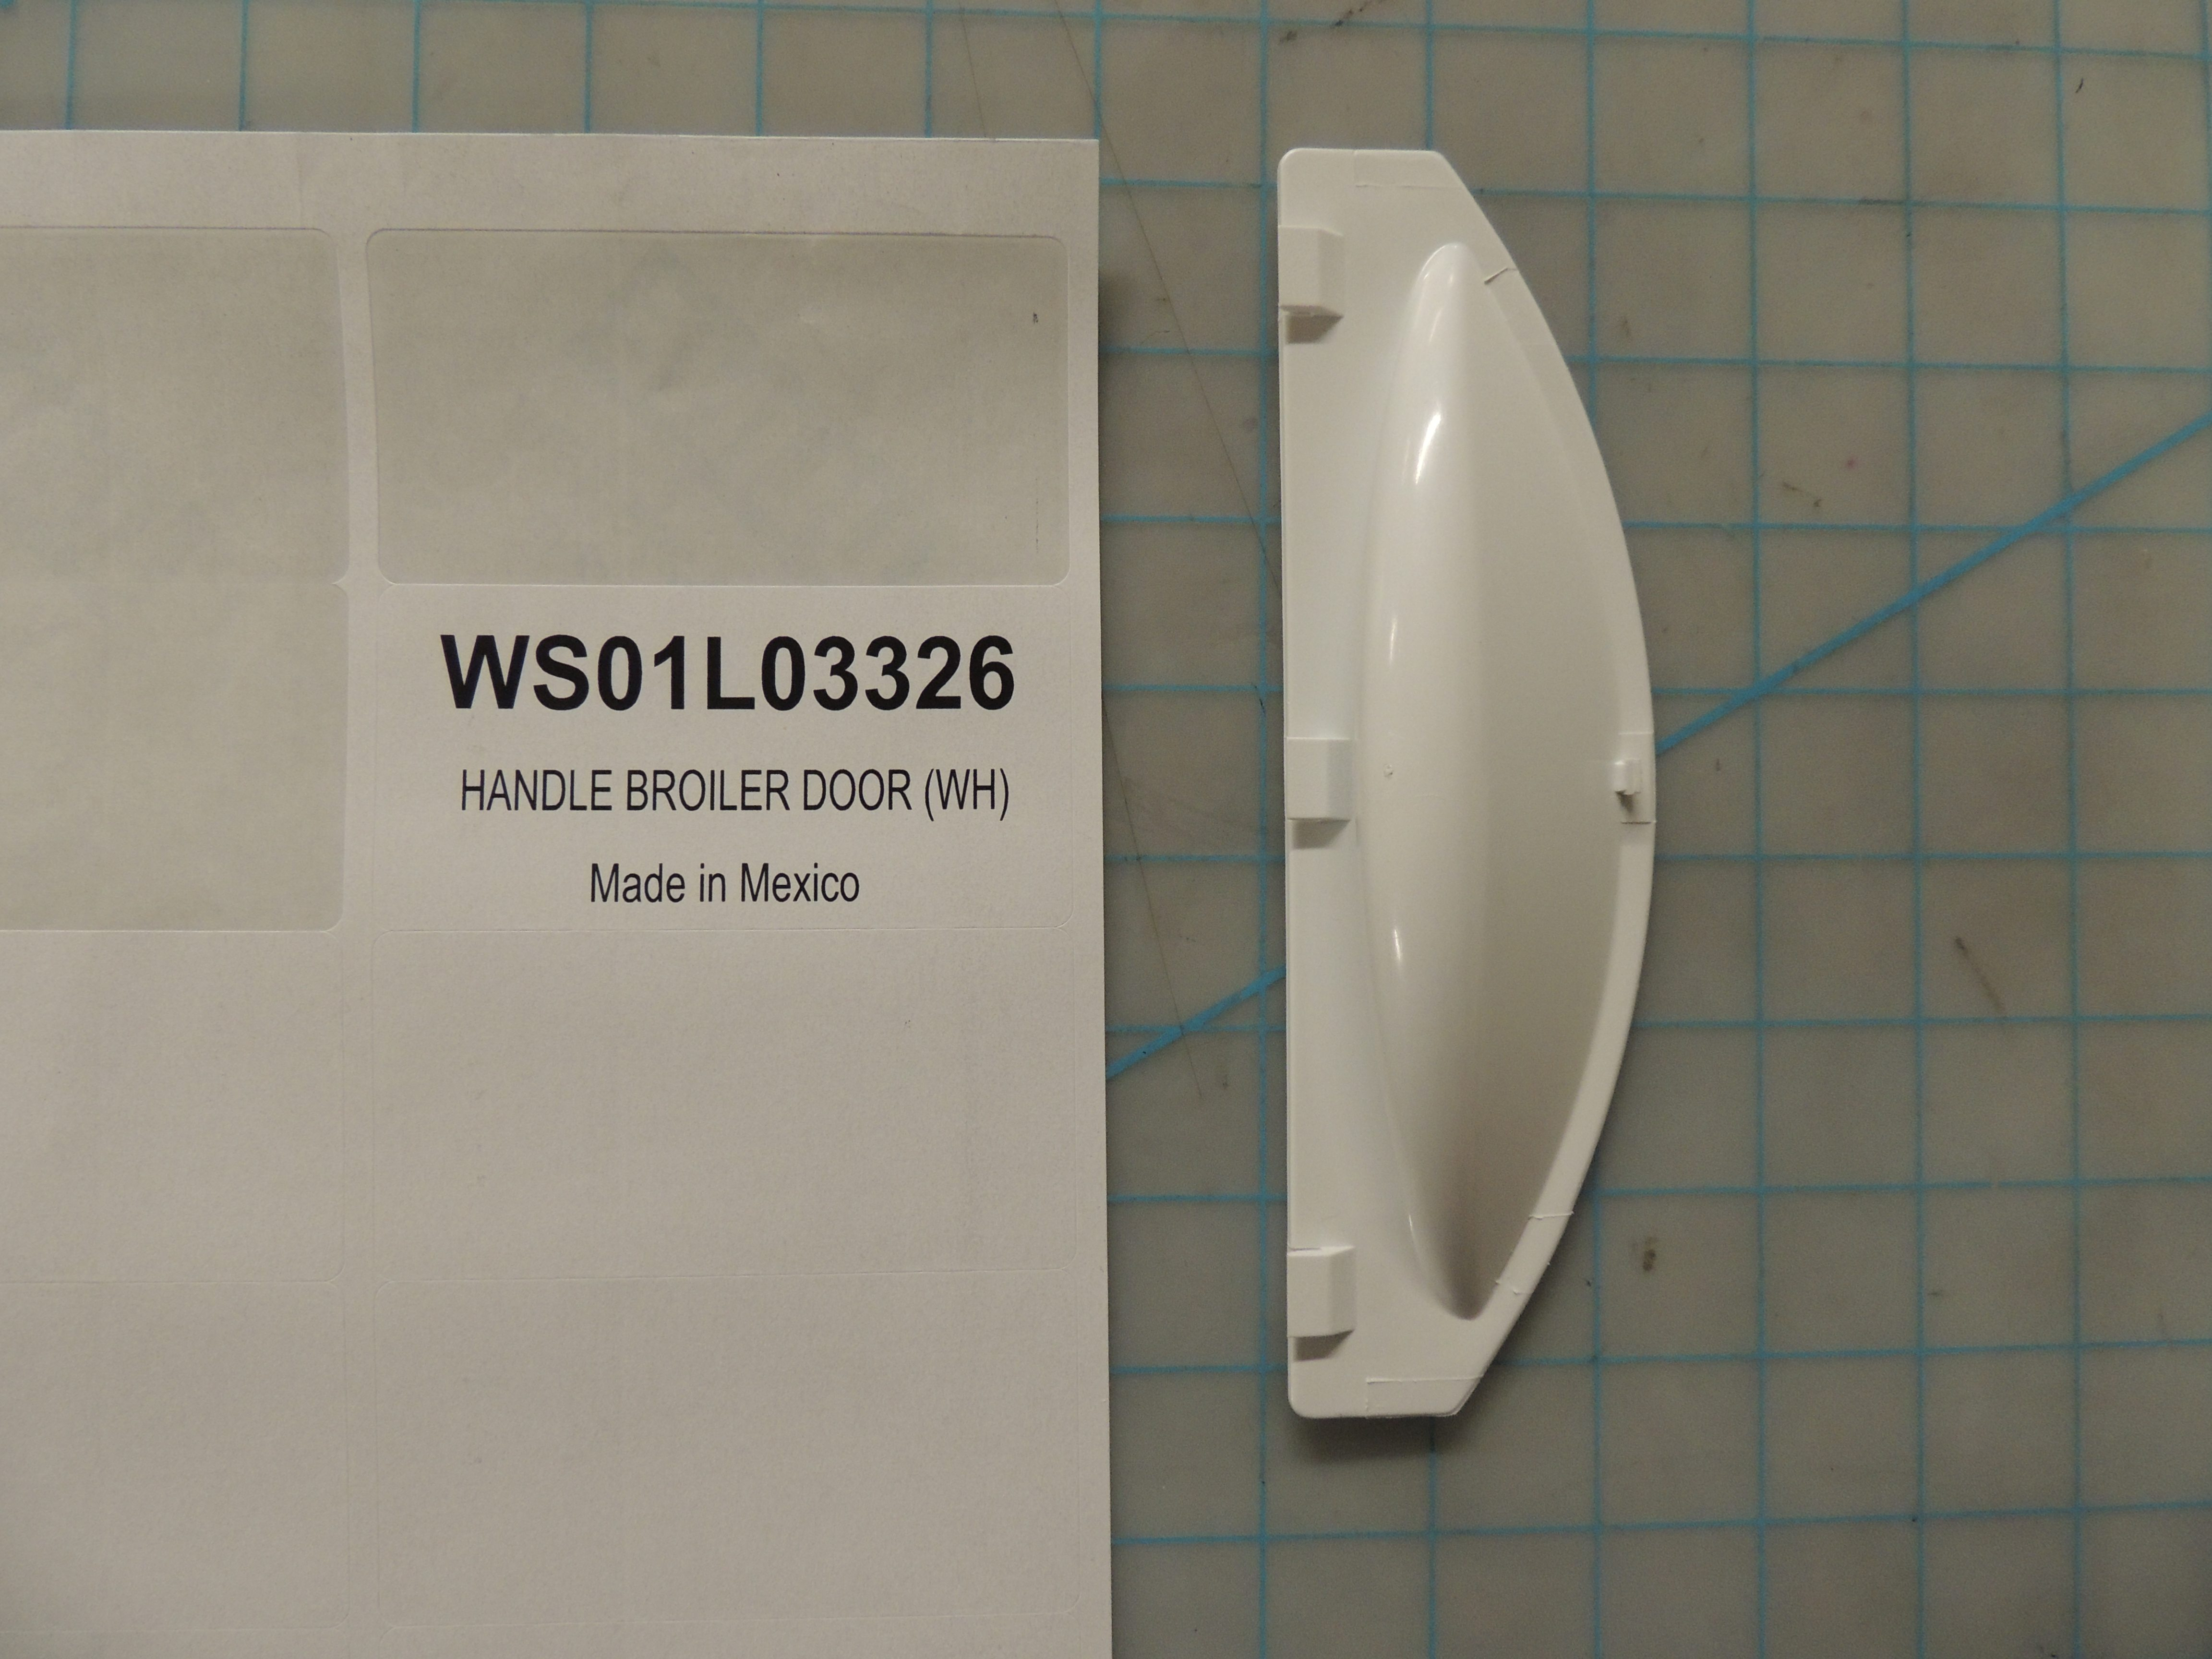 HANDLE BROILER DOOR (WH)